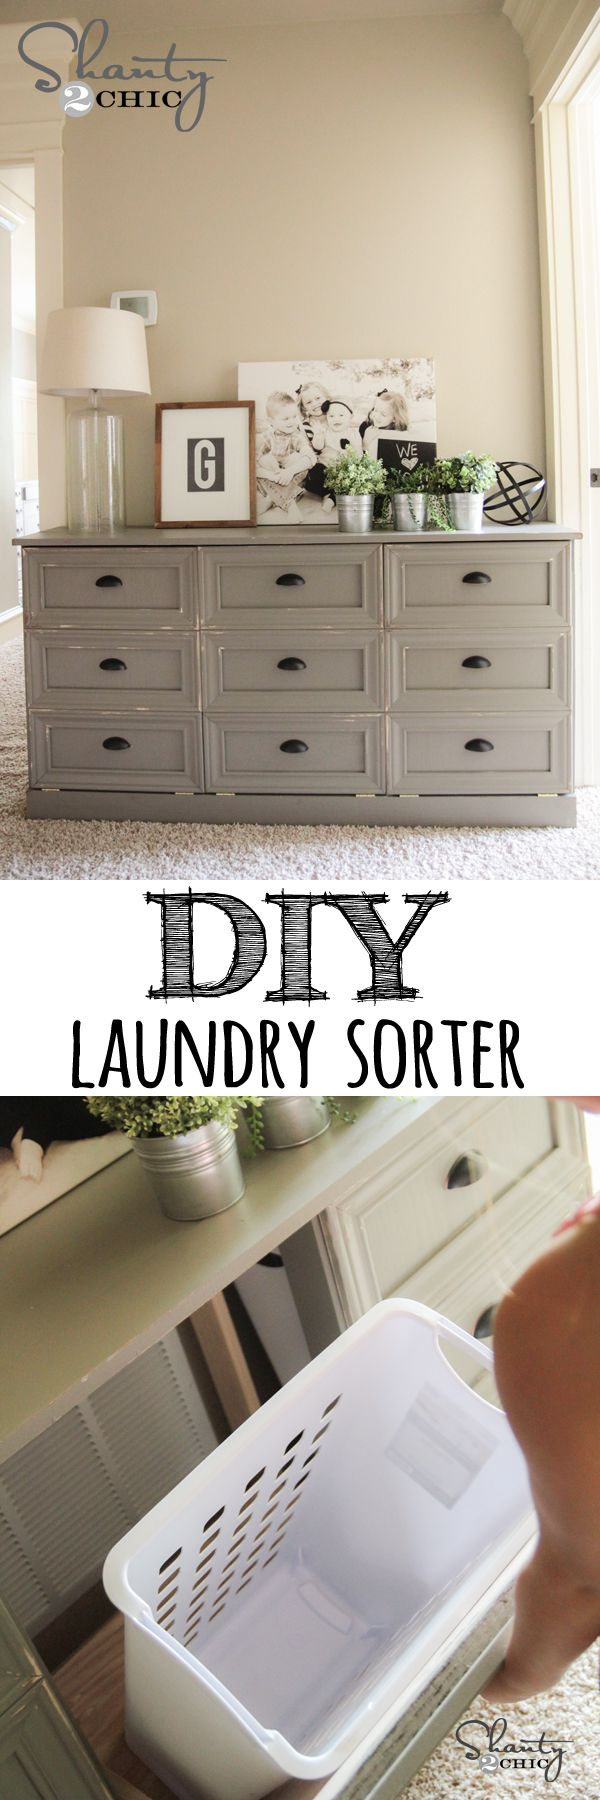 Learn how to build a dresser with a pull-out laundry sorter! FREE plans and tutorial at Shanty-2-Chic.com